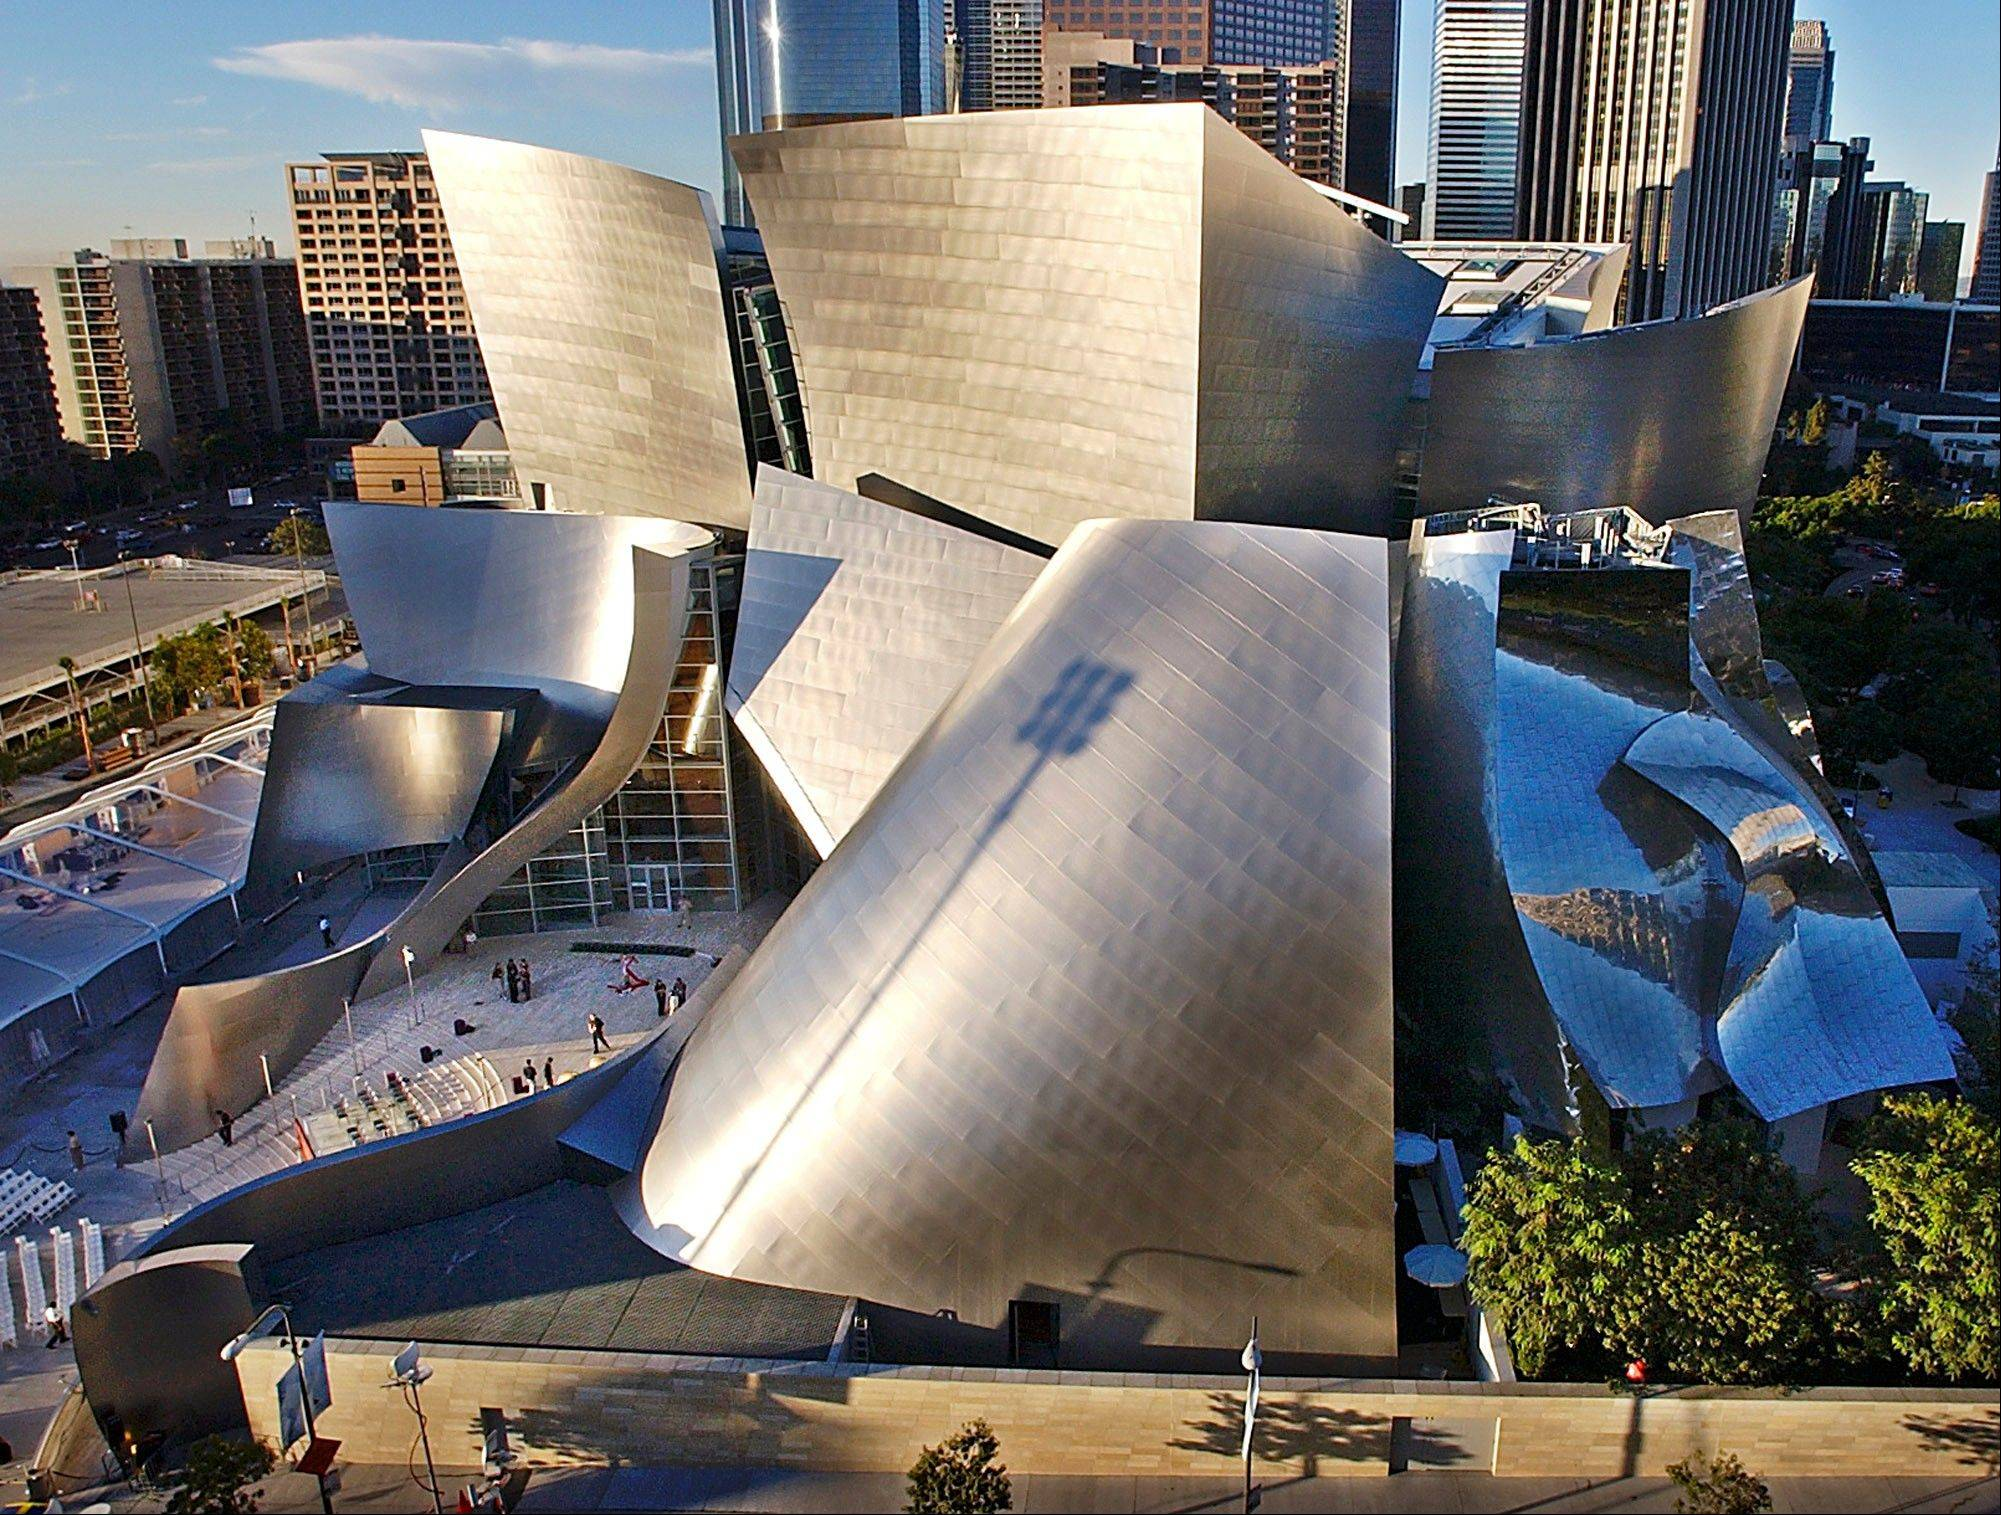 The early morning sun illuminates the new Walt Disney Concert Hall in downtown Los Angeles.